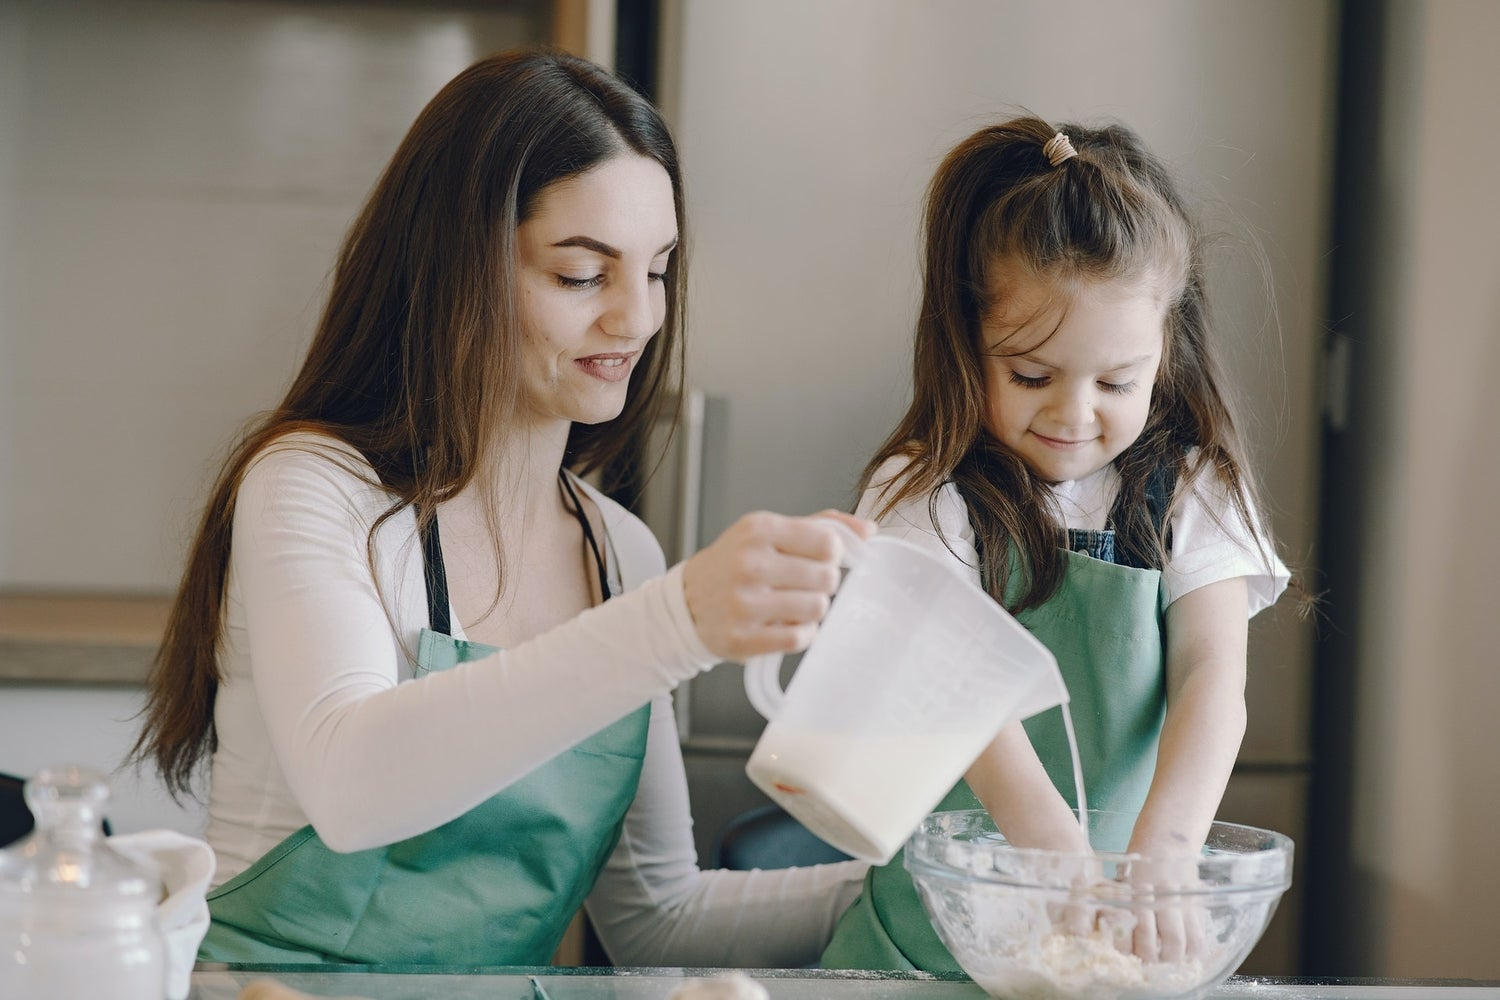 a woman and a child mixing materials in a bowl while wearing aprons, perhaps they are making a science project